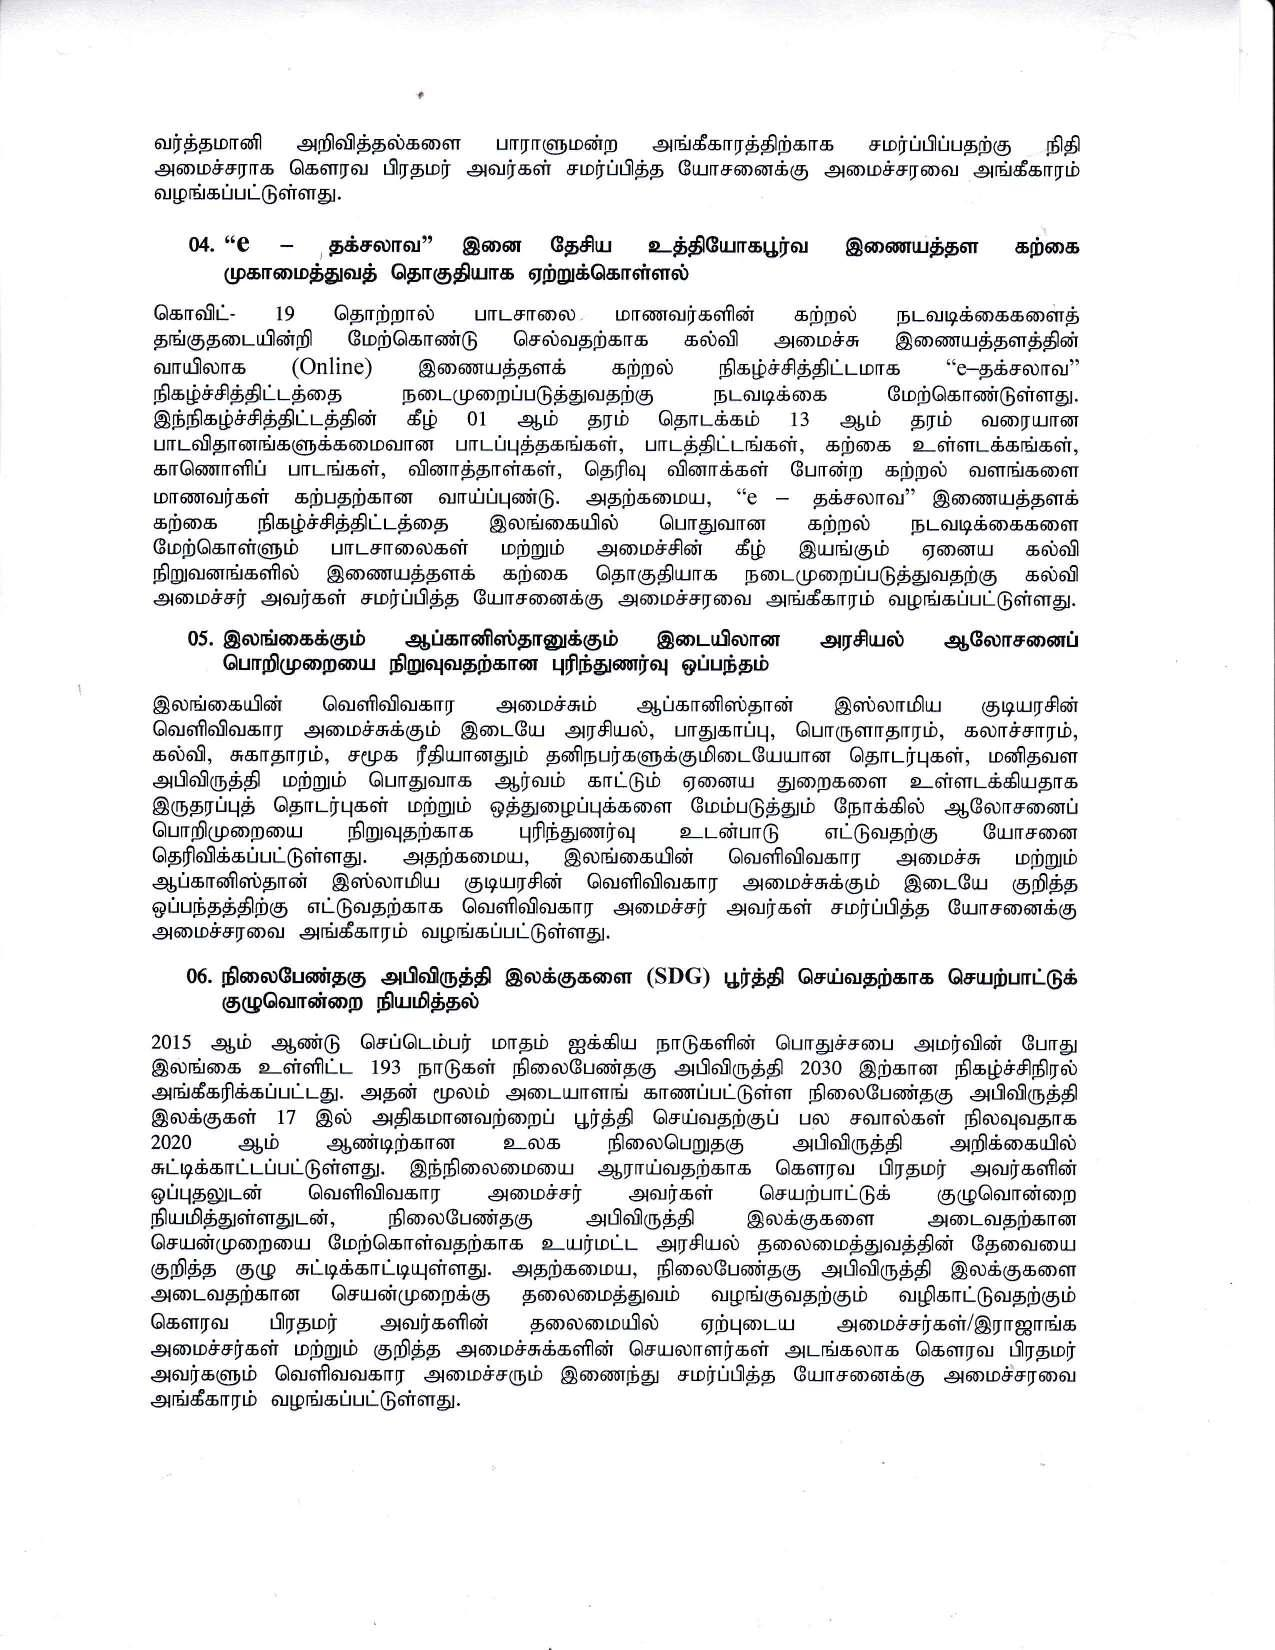 Cabinet Decision on 04.01.2021 Tamil page 002